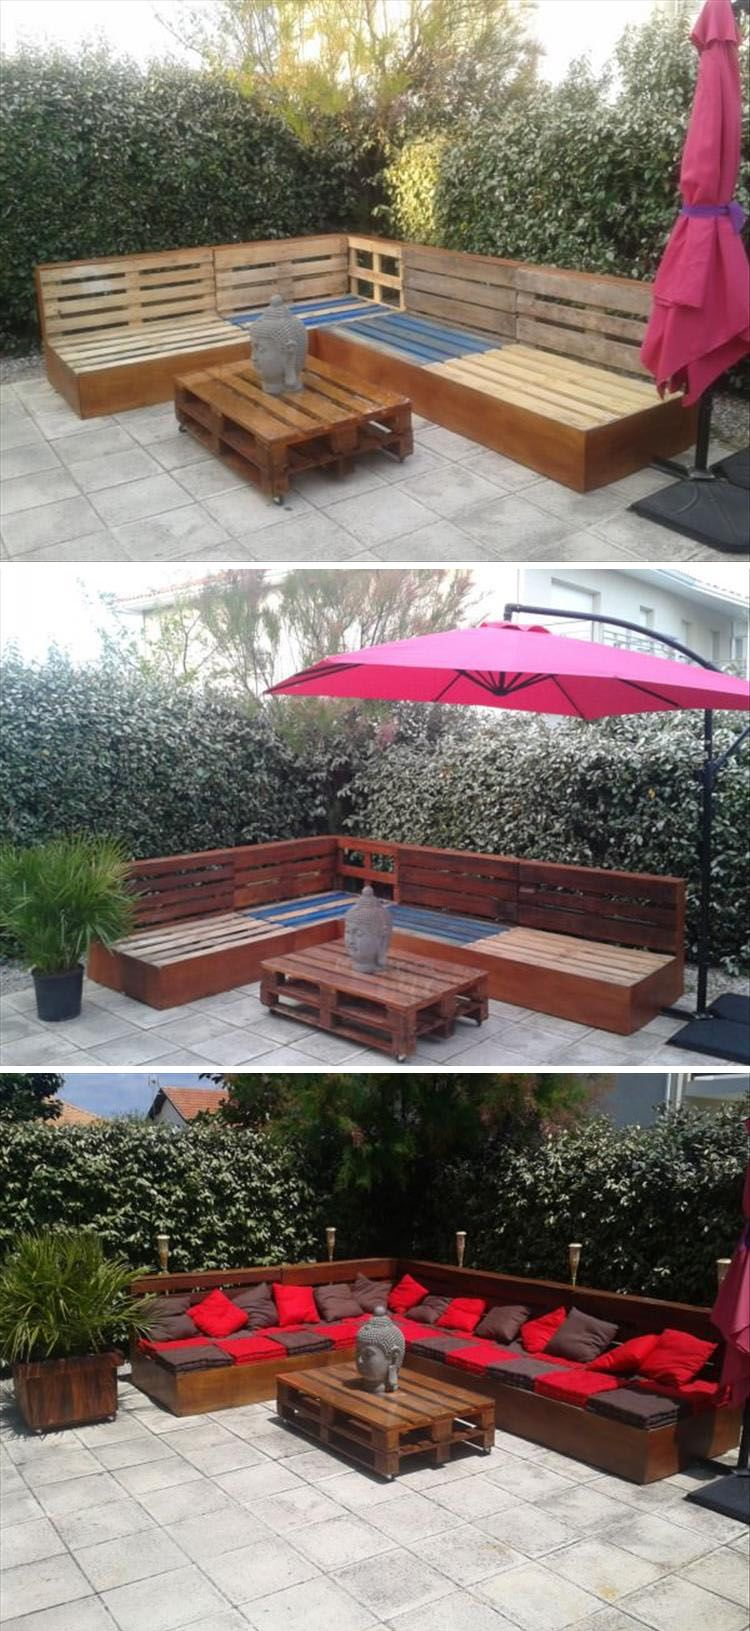 amazing uses for old pallets - 13 pics | uses for old pallets